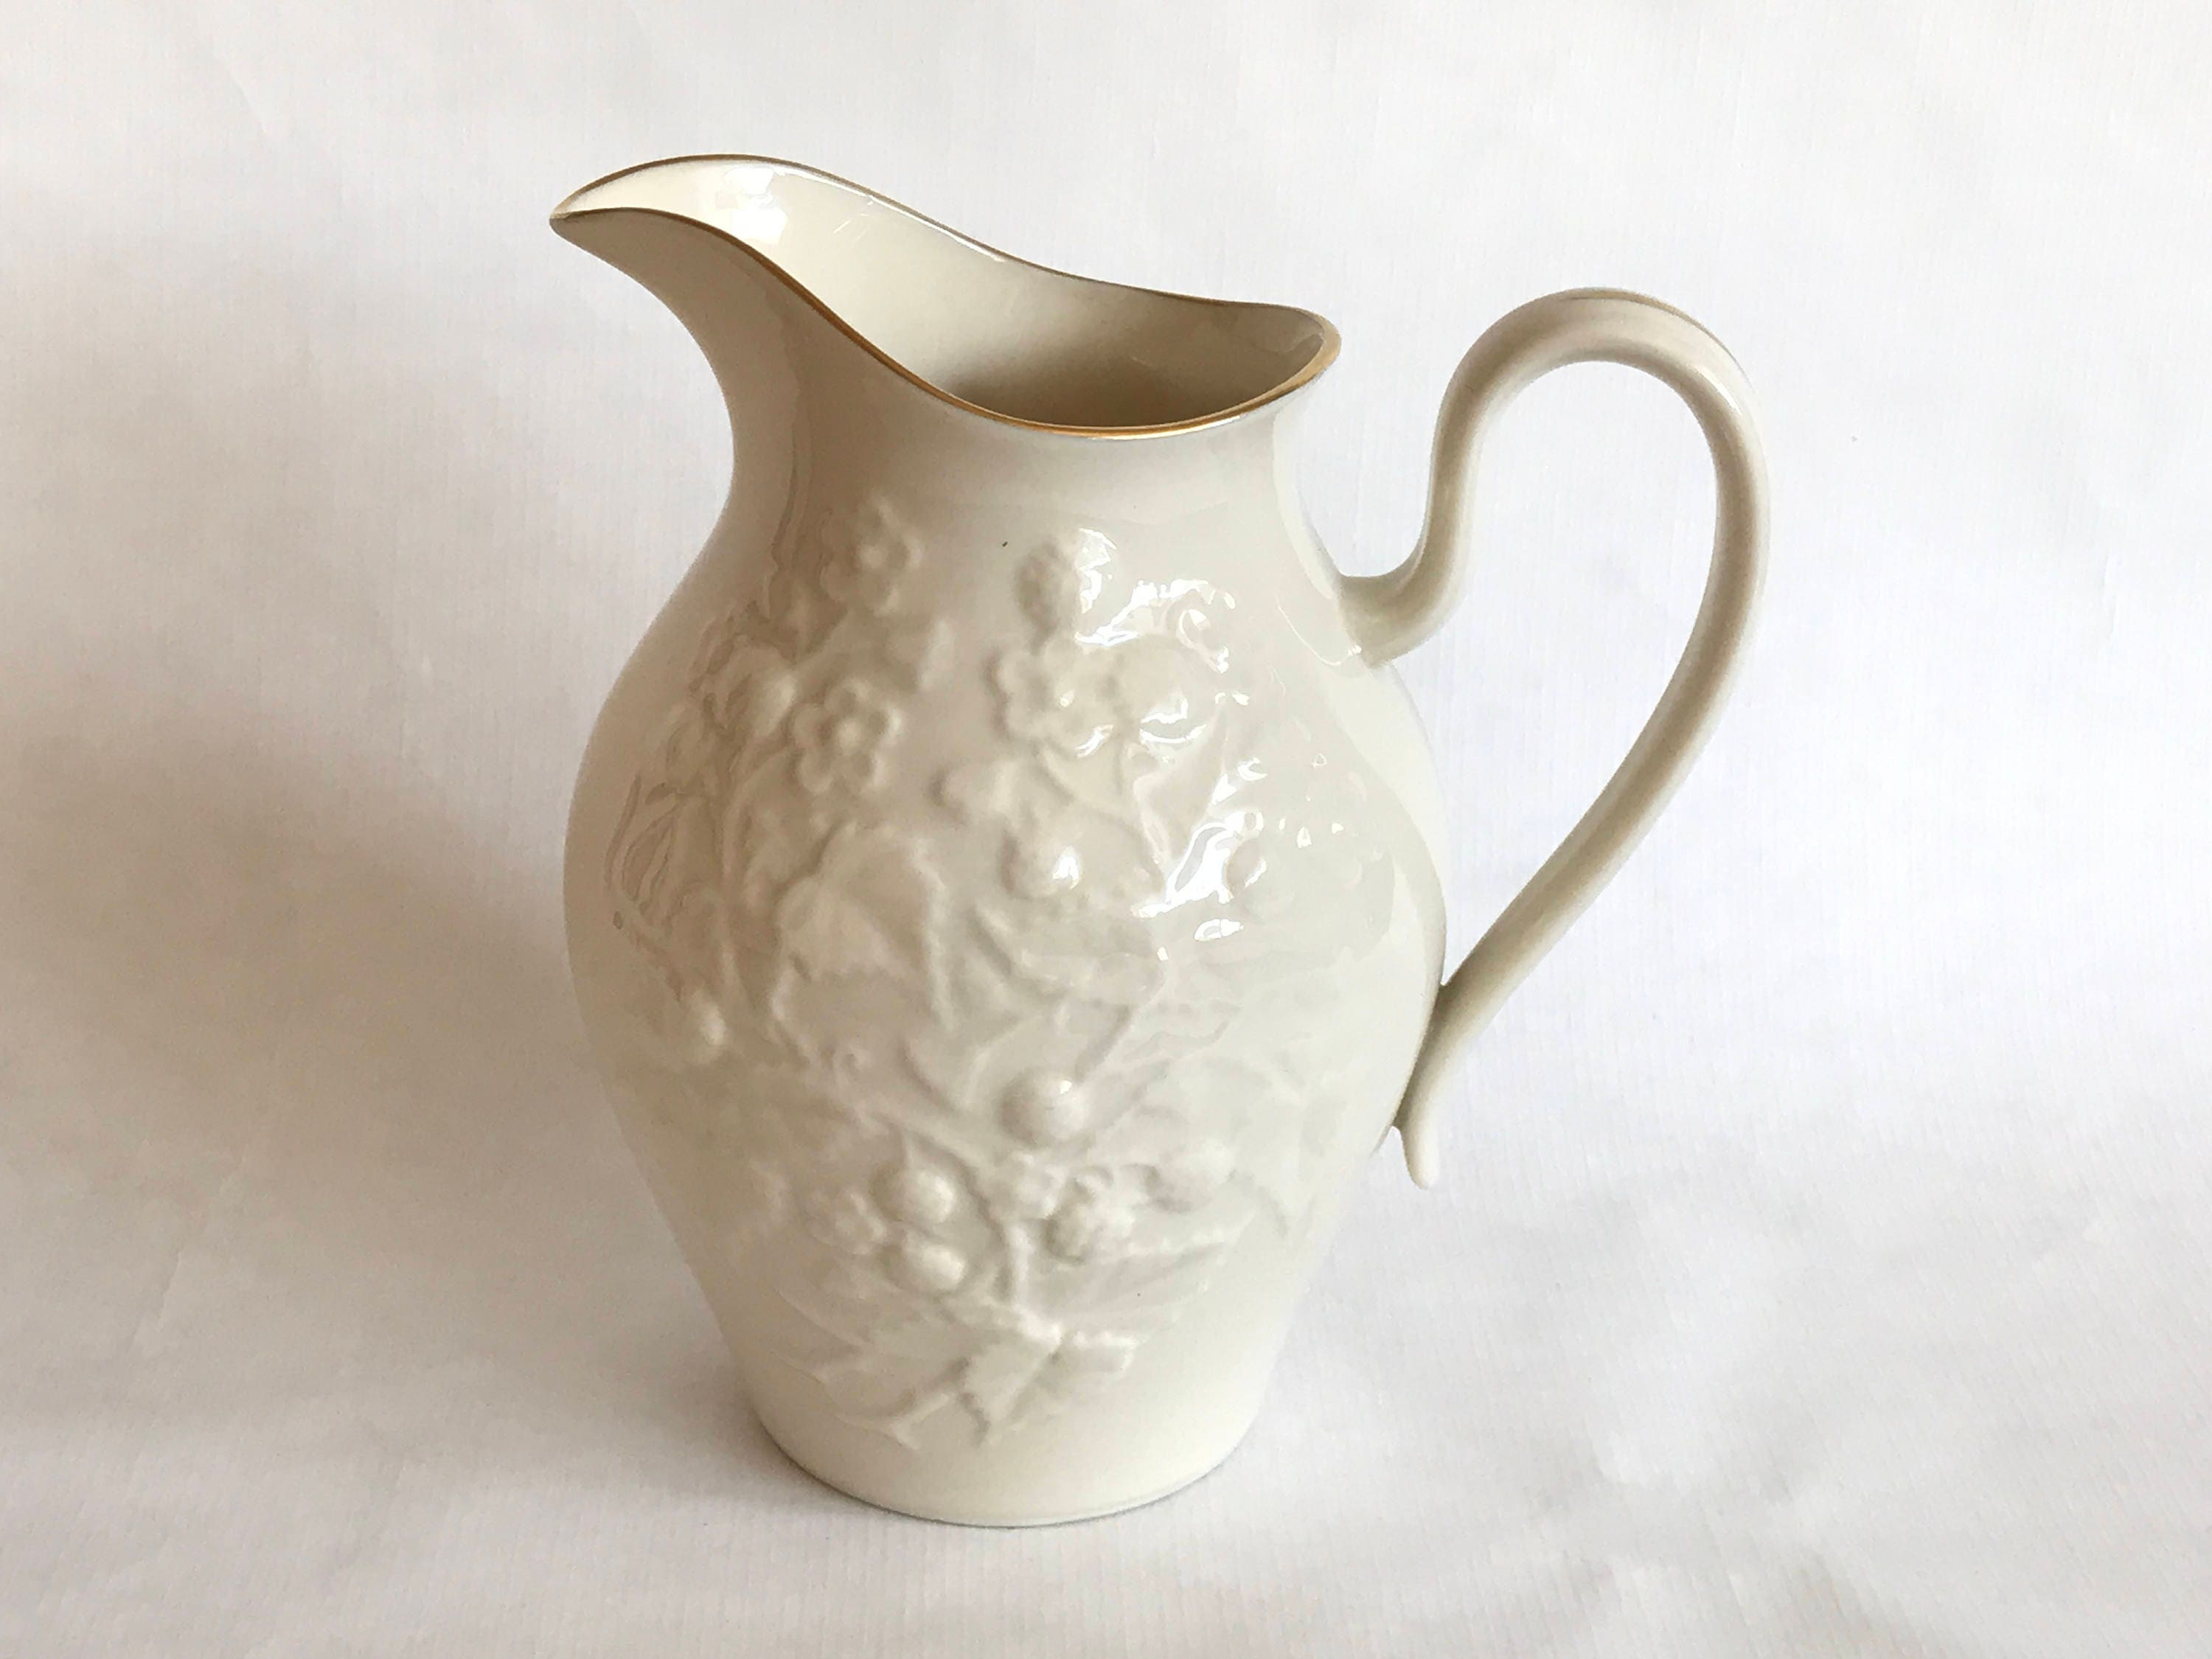 Lenox china pitcher ivory with gold trim lenox embossed berries lenox china pitcher ivory with gold trim lenox embossed berries and vines made in usa gold mark gift for her lenox china vase floridaeventfo Choice Image